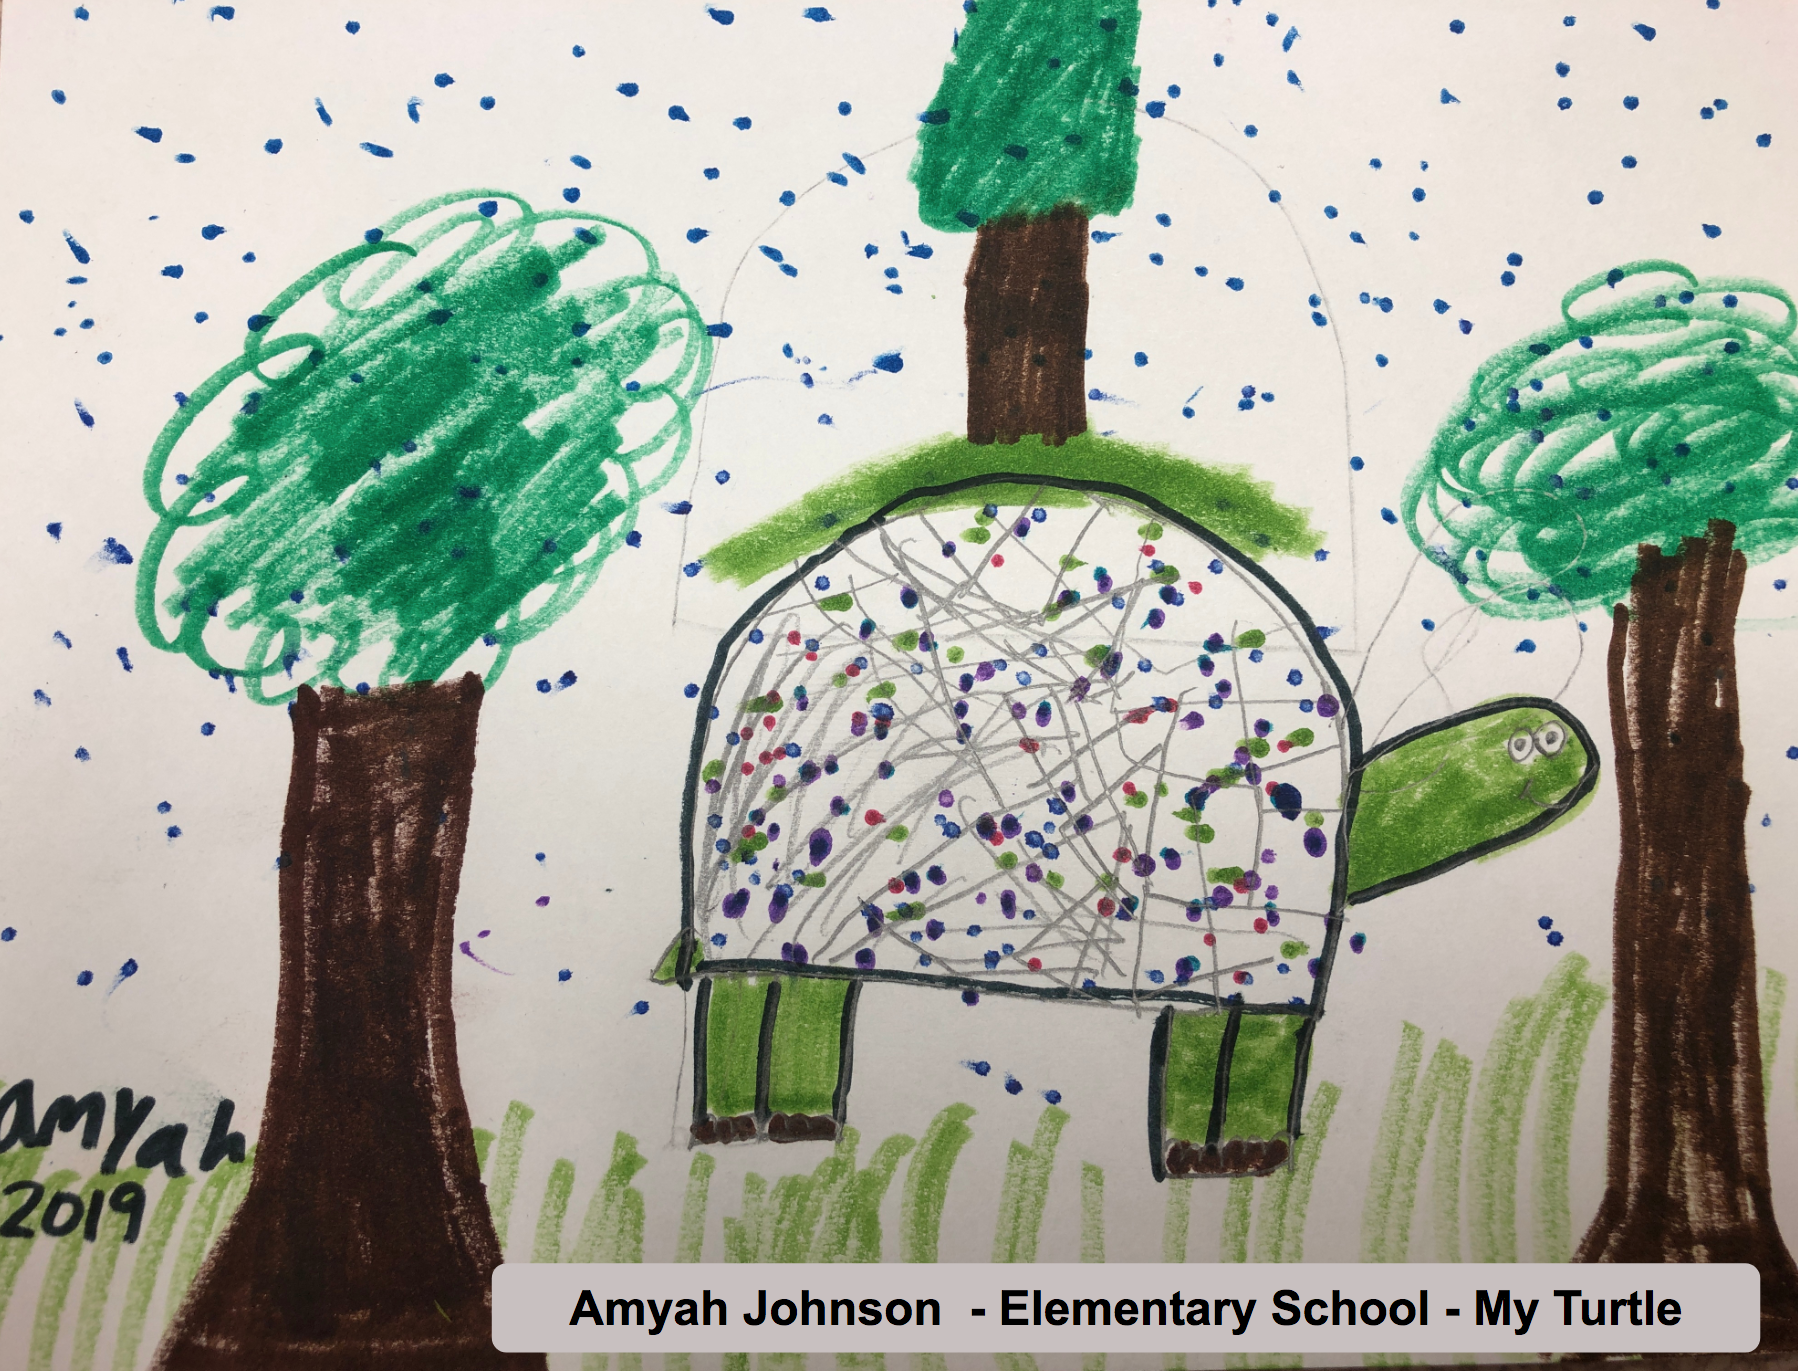 Amyah Johnson - Elementary School - My Turtle